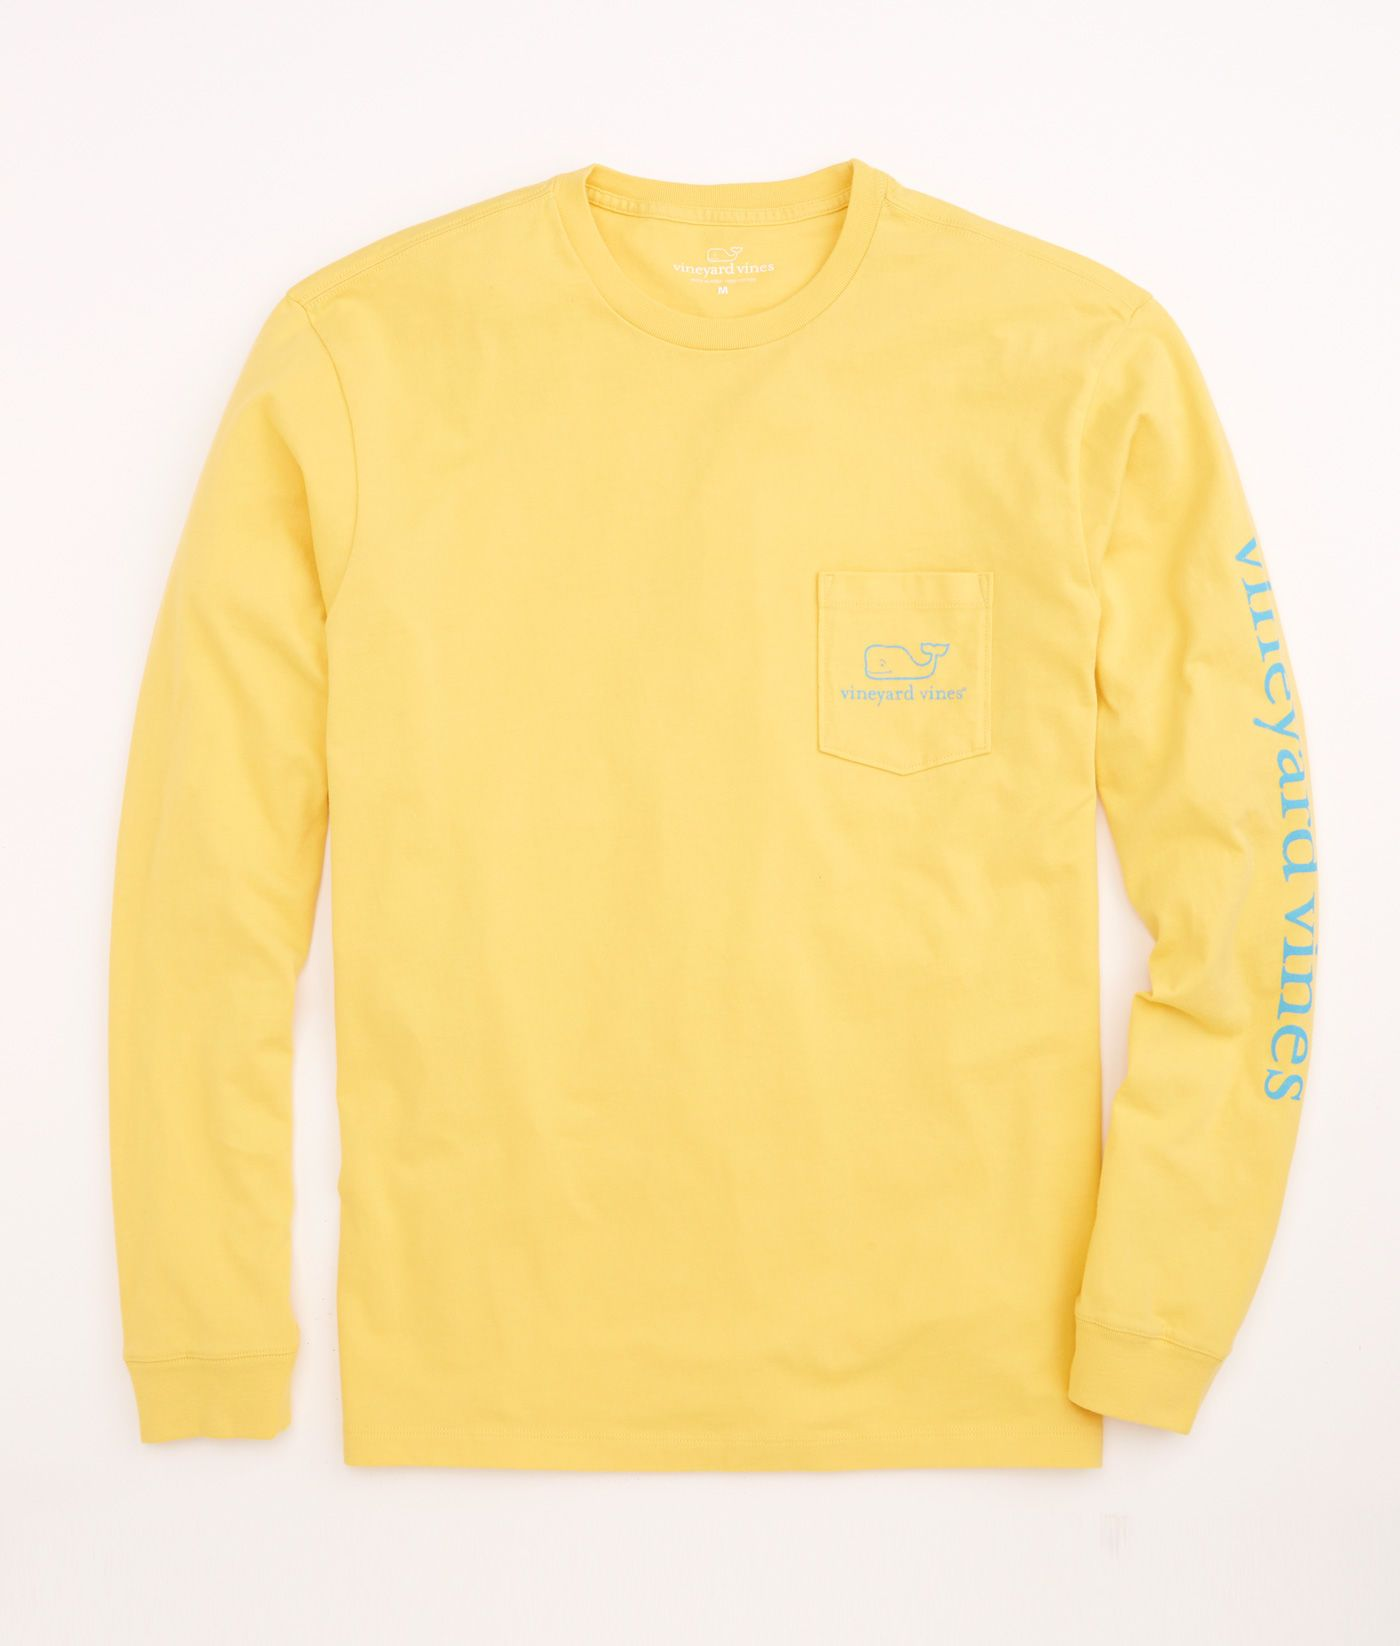 82391cc06bd0 Long-Sleeve Vintage Graphic T-Shirt vineyard vines rockport yellow ...